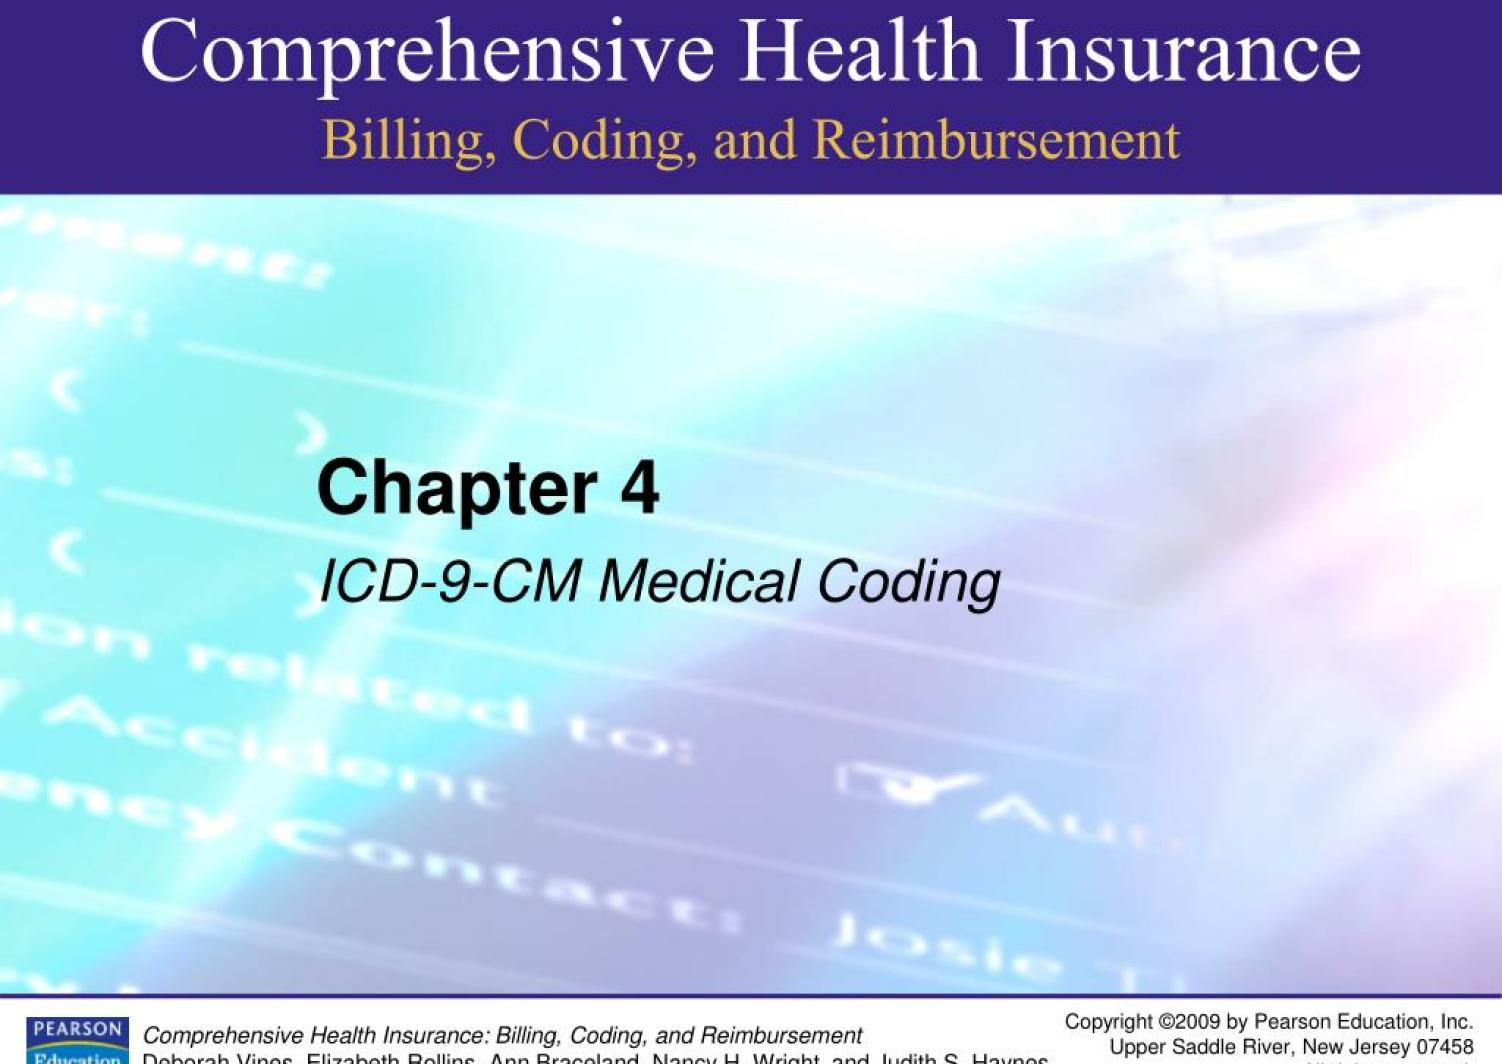 Ppt Chapter 4 Icd 9 Cm Medical Coding Powerpoint Presentation Free Download Id 4275371